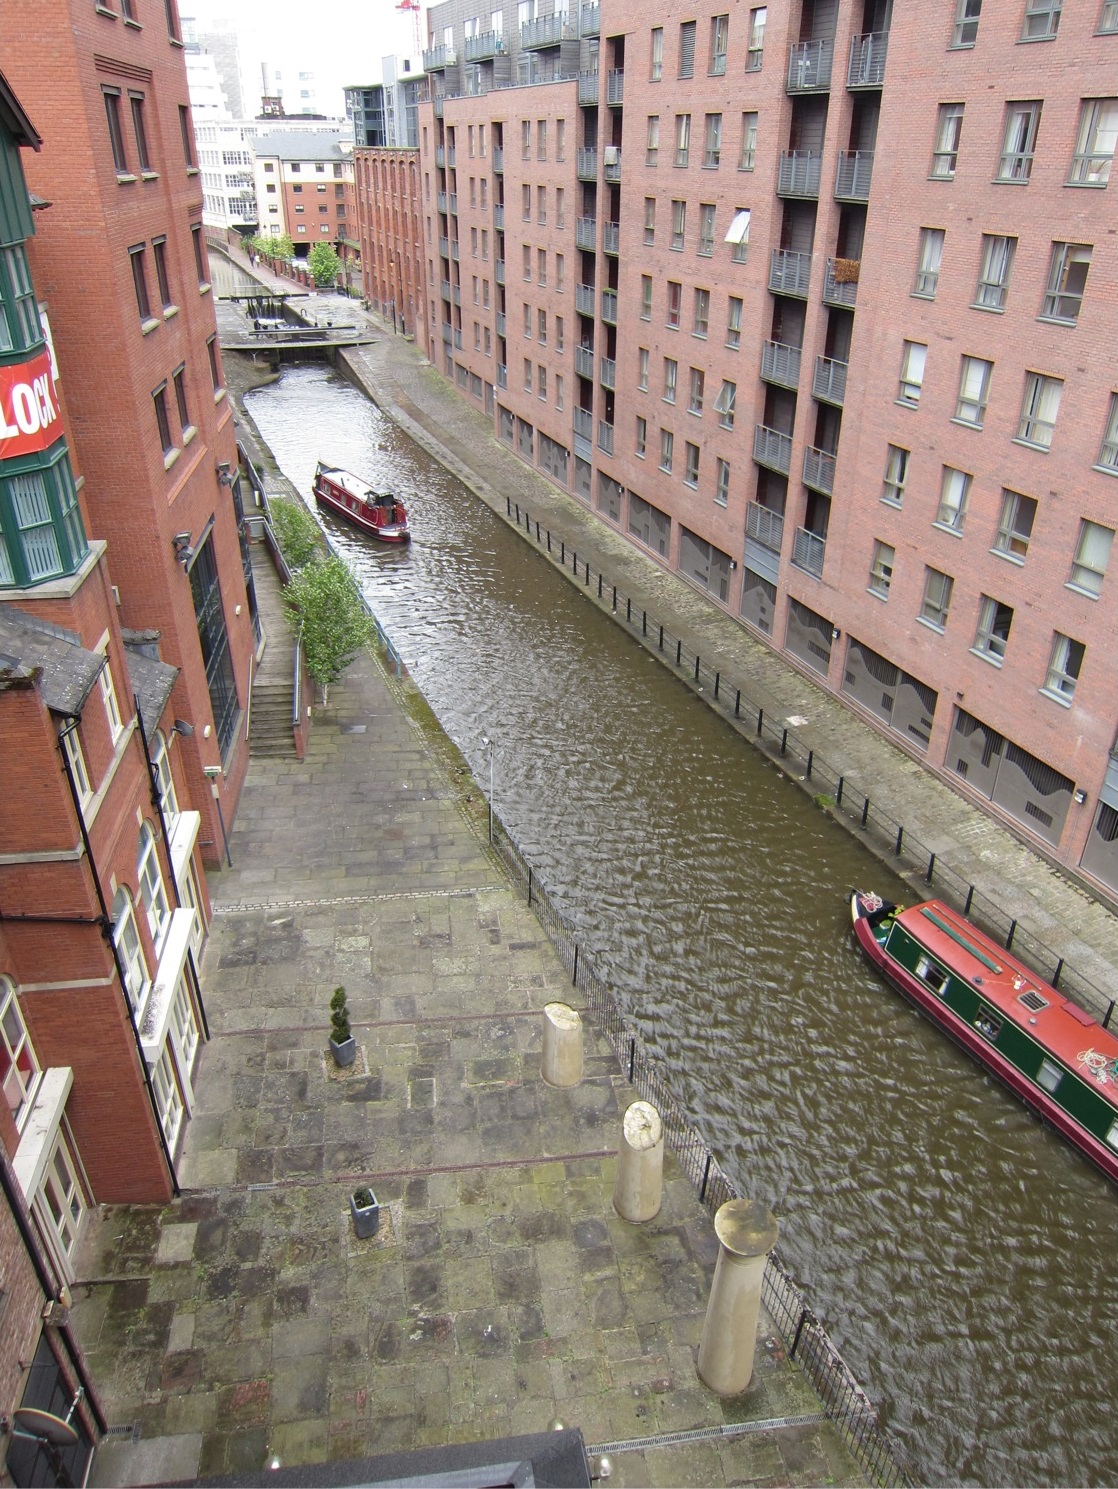 ALBION CHAMBERS - Albion Wharf - Albion Street, M1 - Manchester